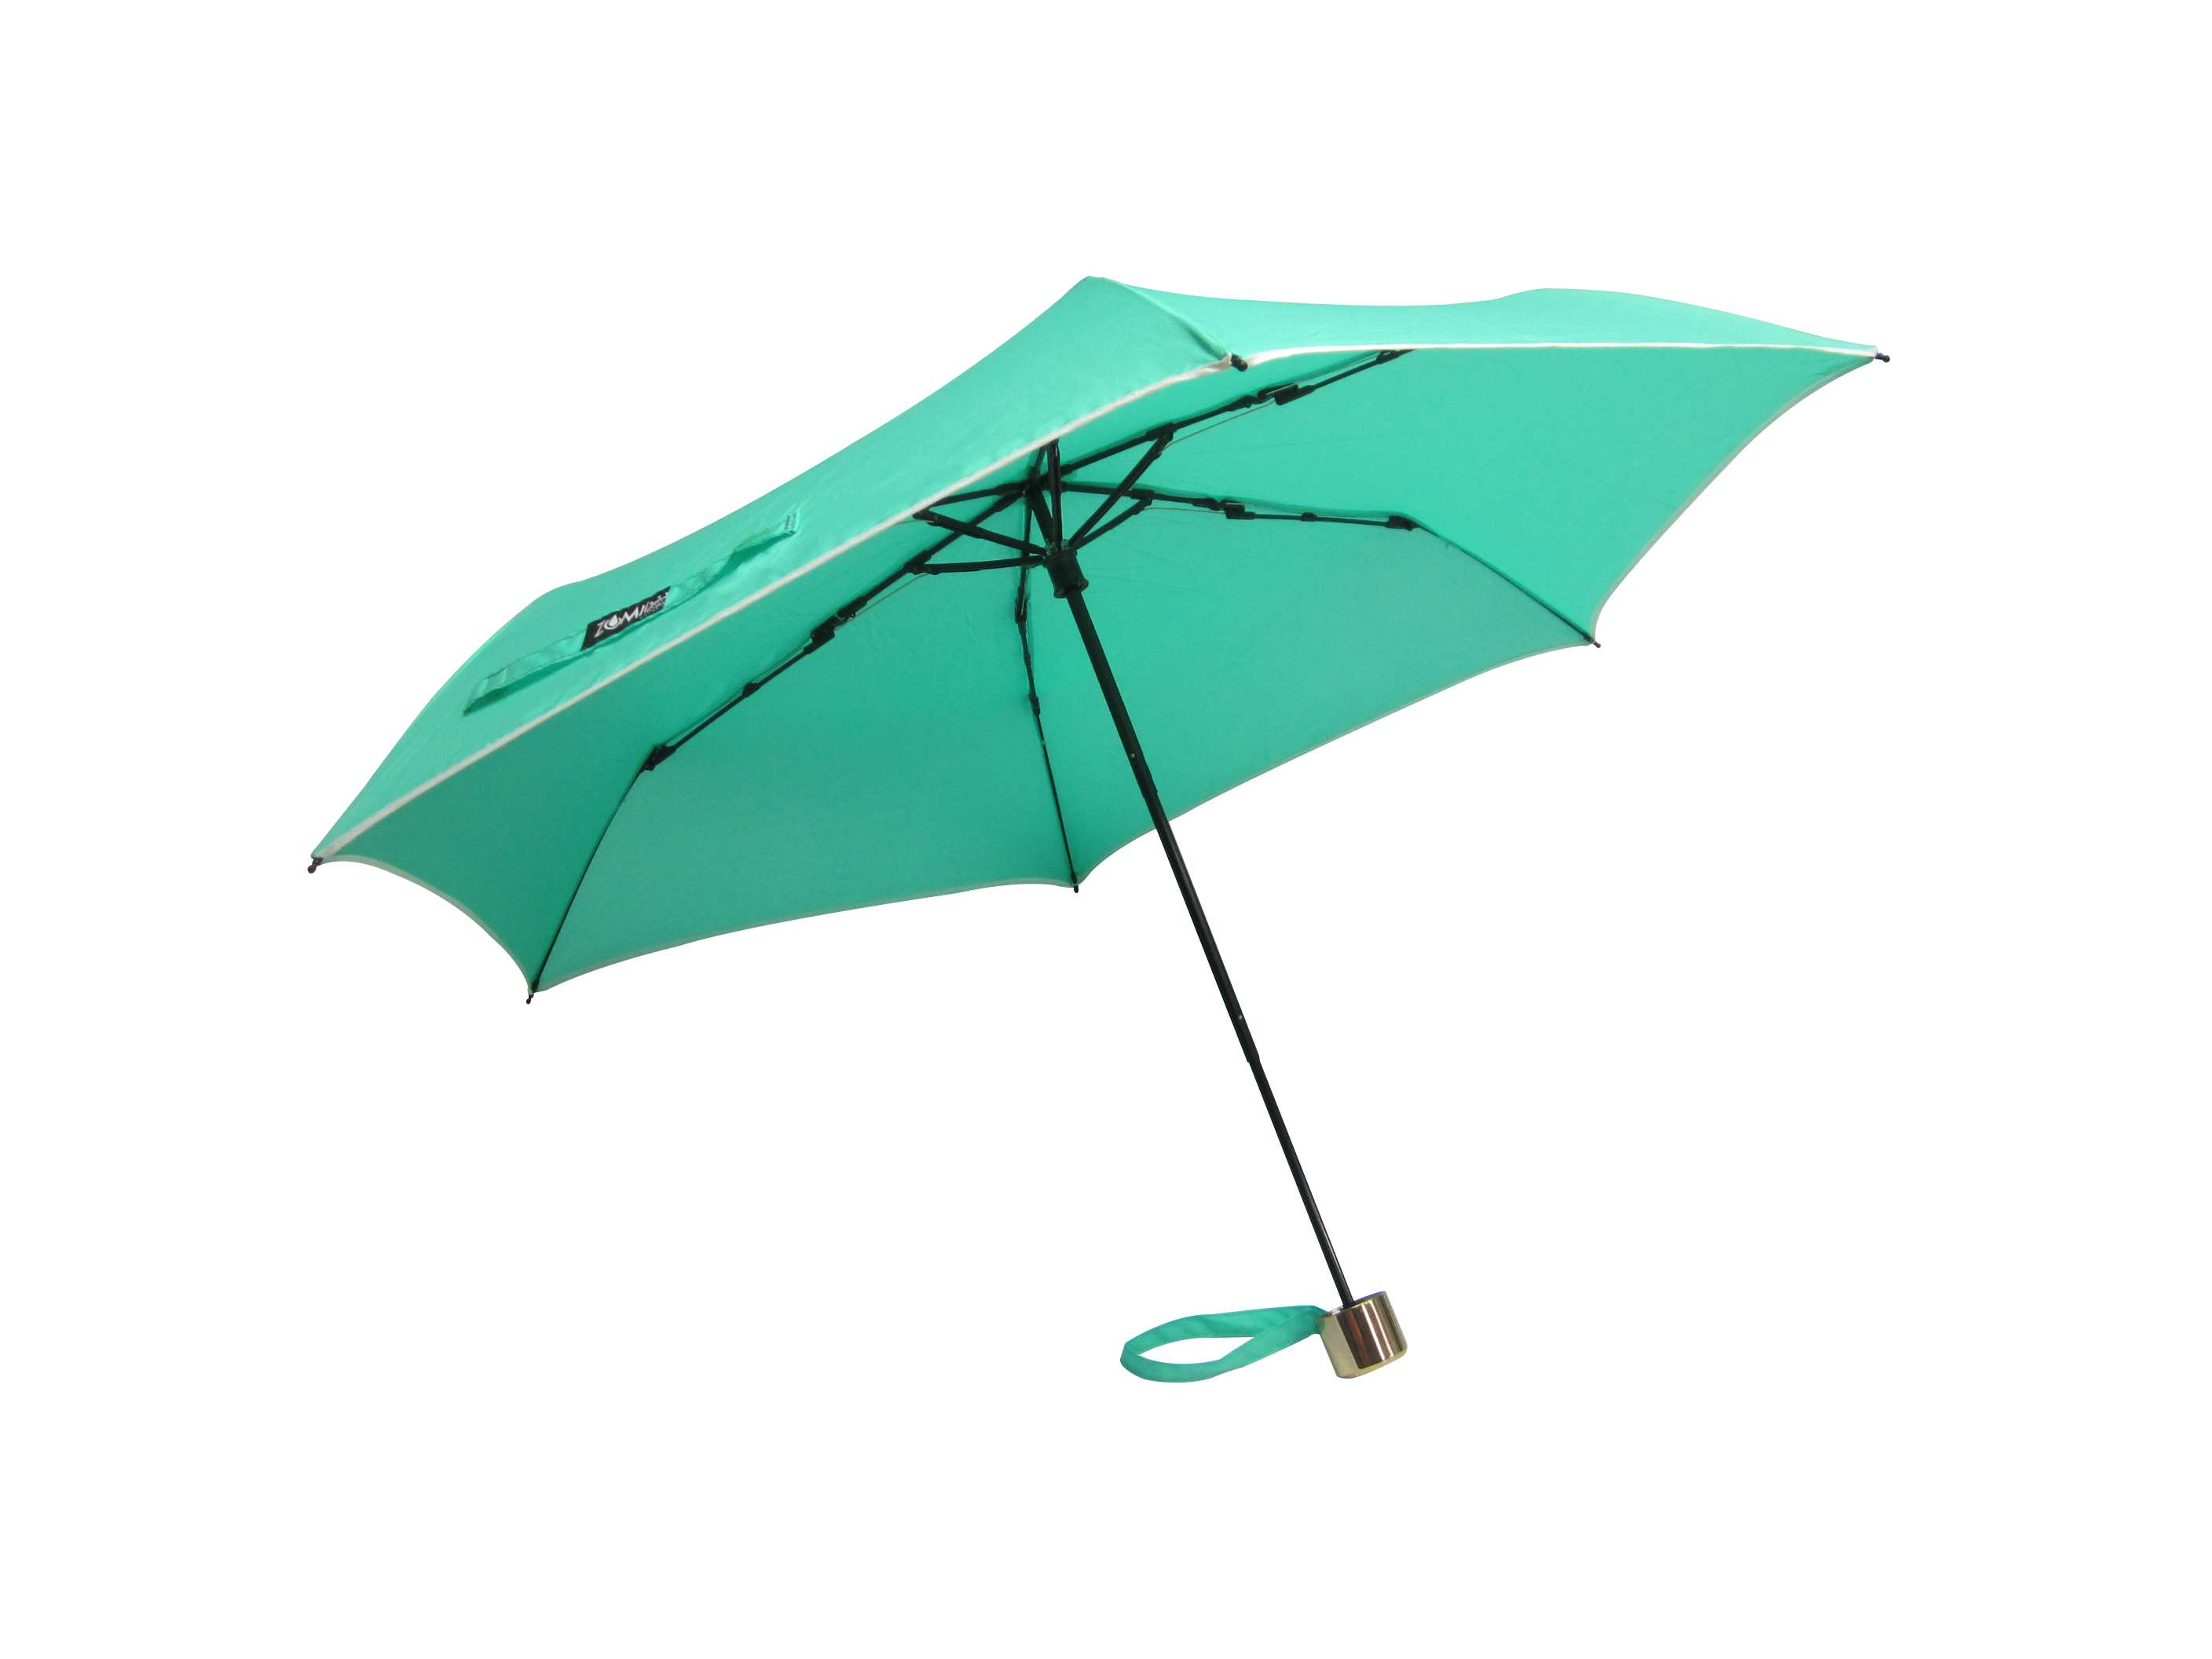 Emerald Super Light Umbrella